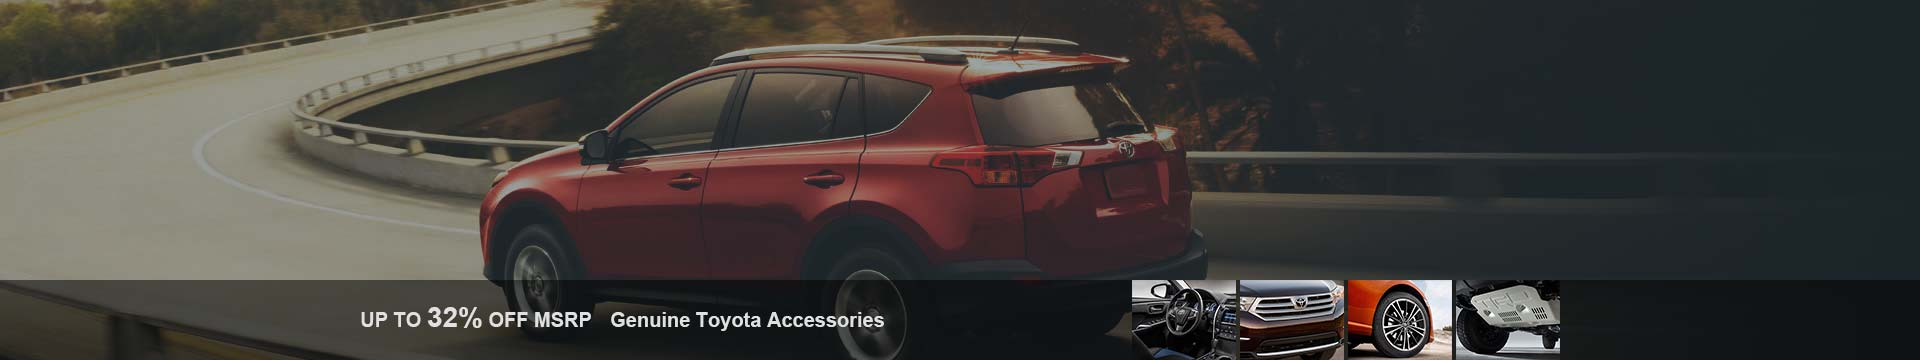 Shop Toyota Mirai accessories with lowest prices